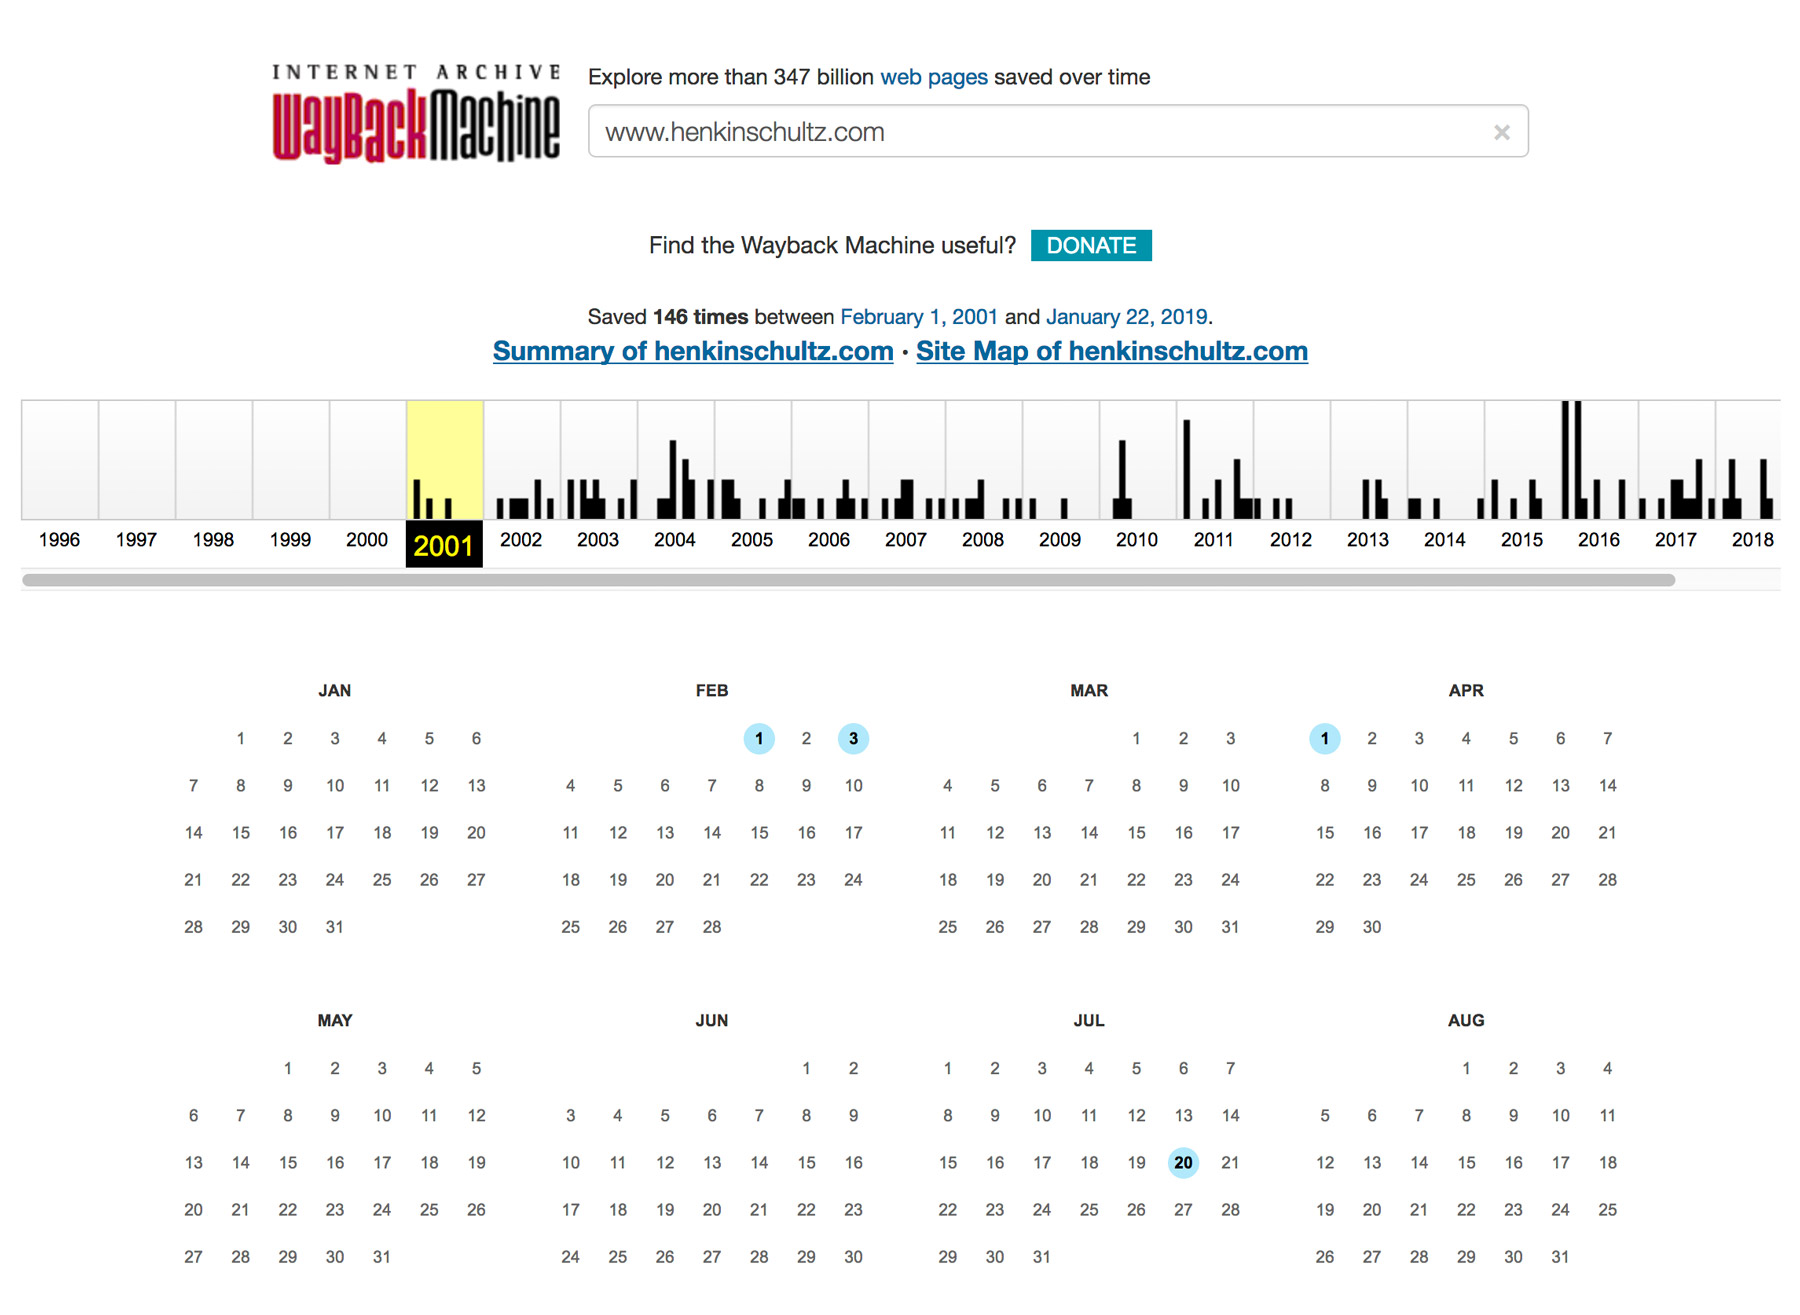 calendar indicating backups on Wayback Machine